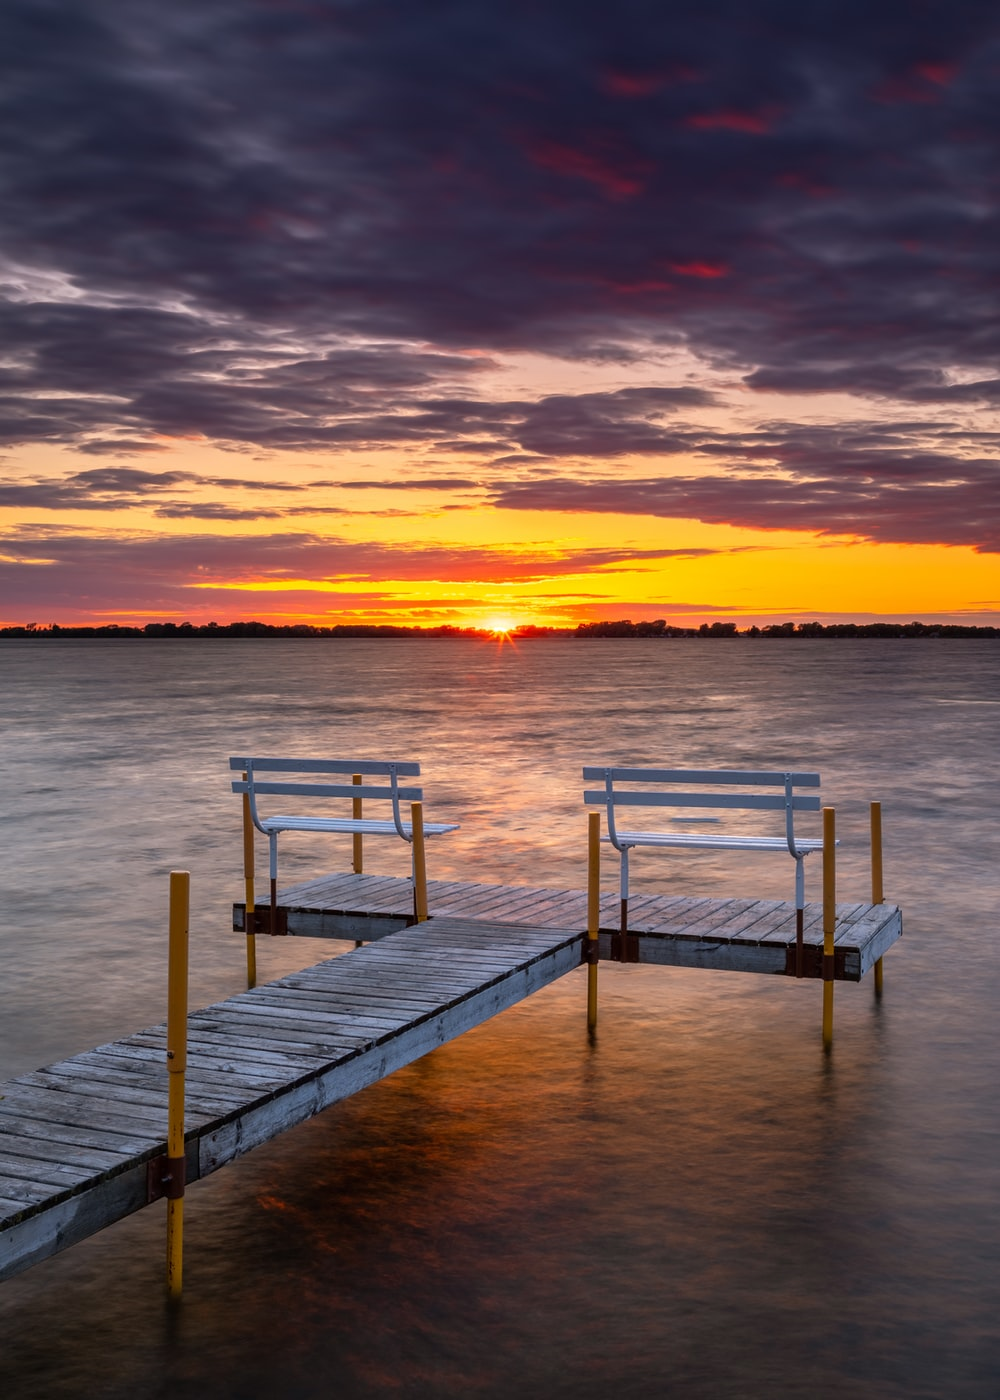 brown wooden dock on sea during sunset